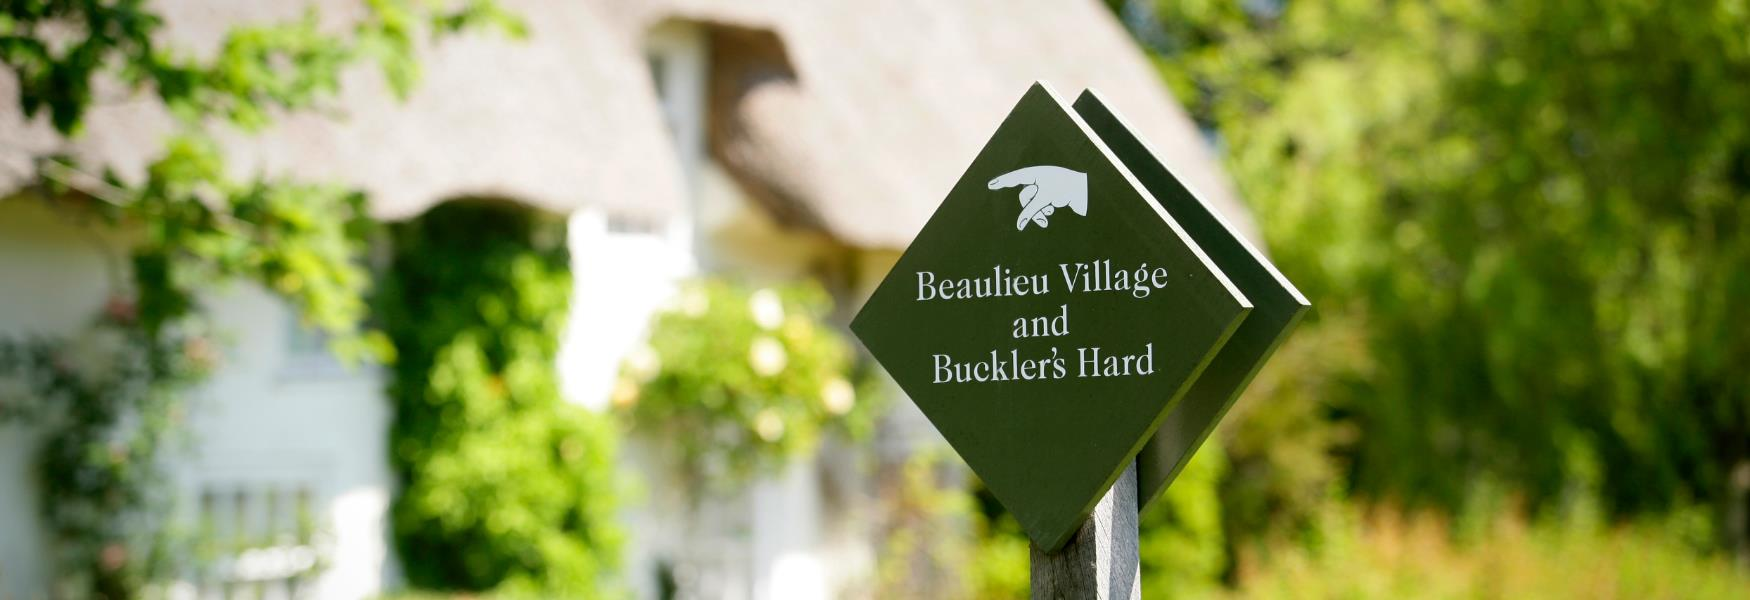 Sign post to Beaulieu Village in Beaulieu Village